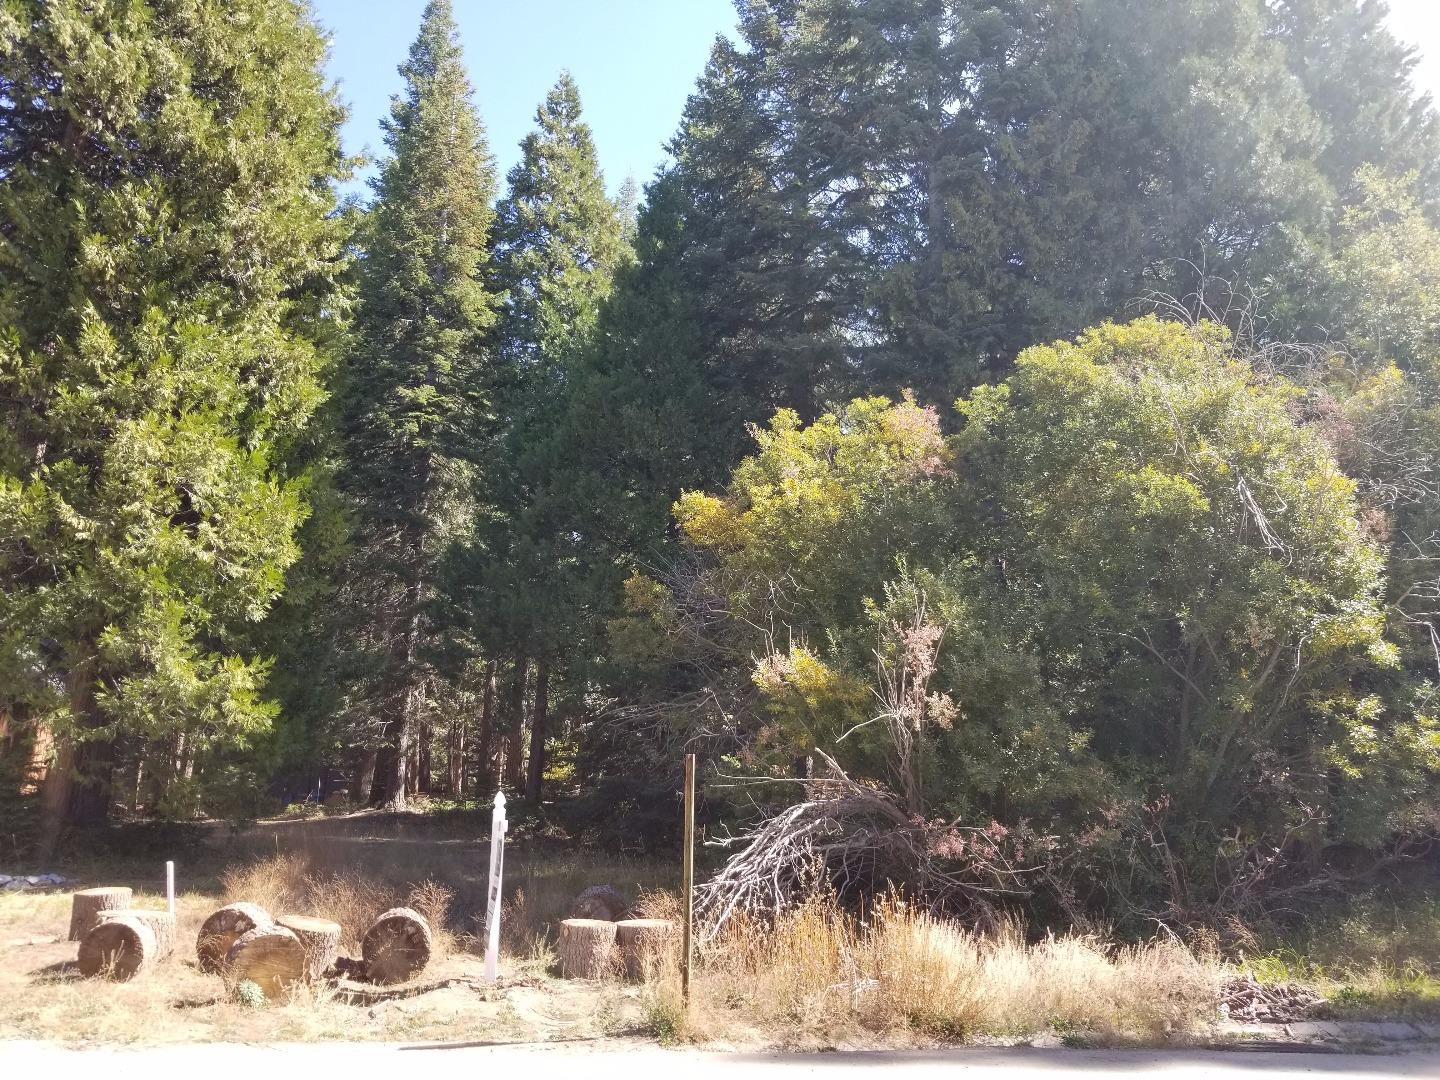 Terreno por un Venta en LOT 24 Cedar Ridge Lane LOT 24 Cedar Ridge Lane Shaver Lake, California 93664 Estados Unidos